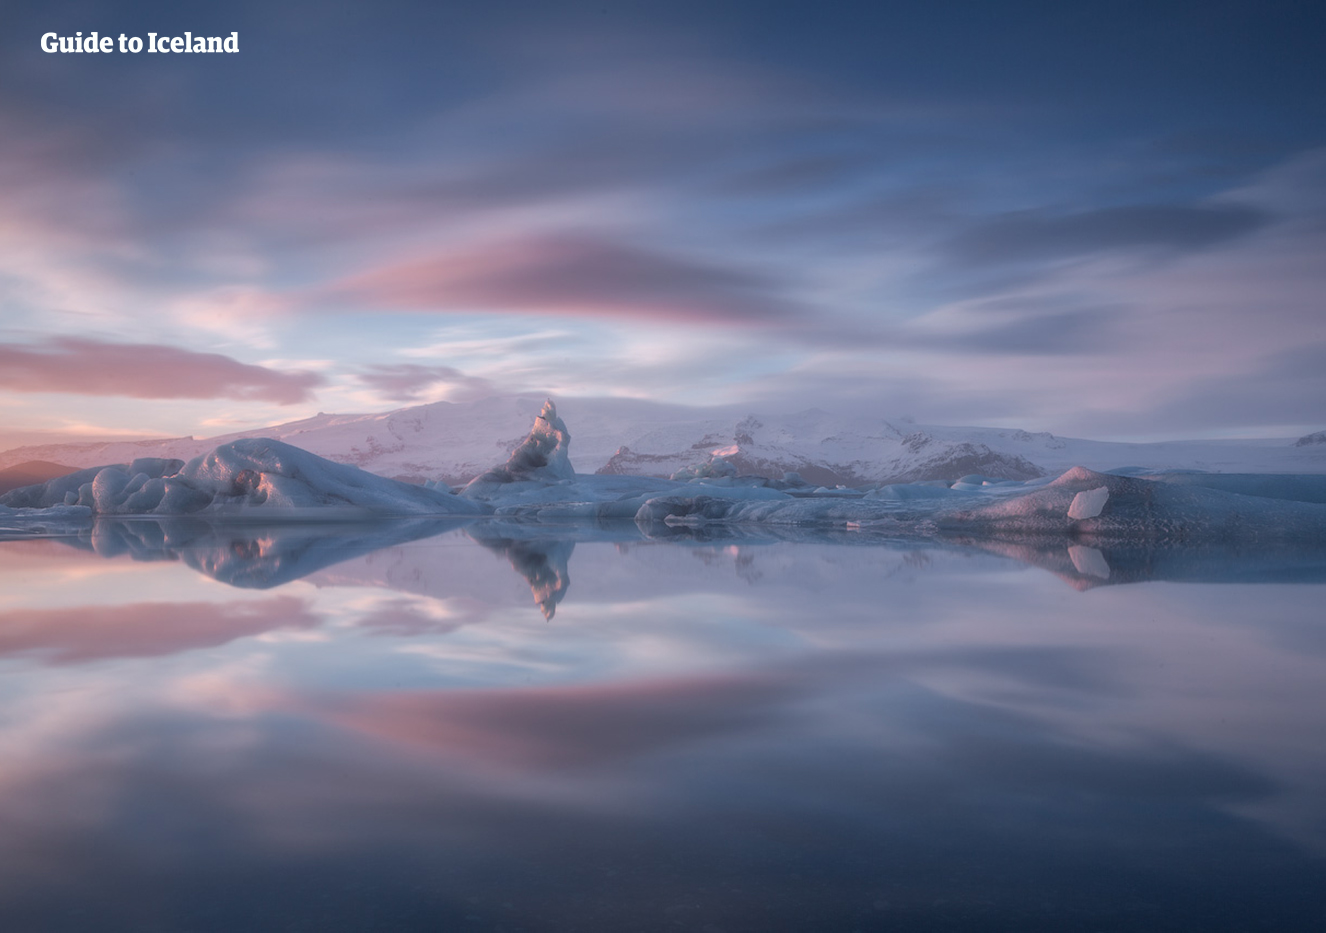 Jökulsárlón glacier lagoon is as stunning in winter as it is in summer.